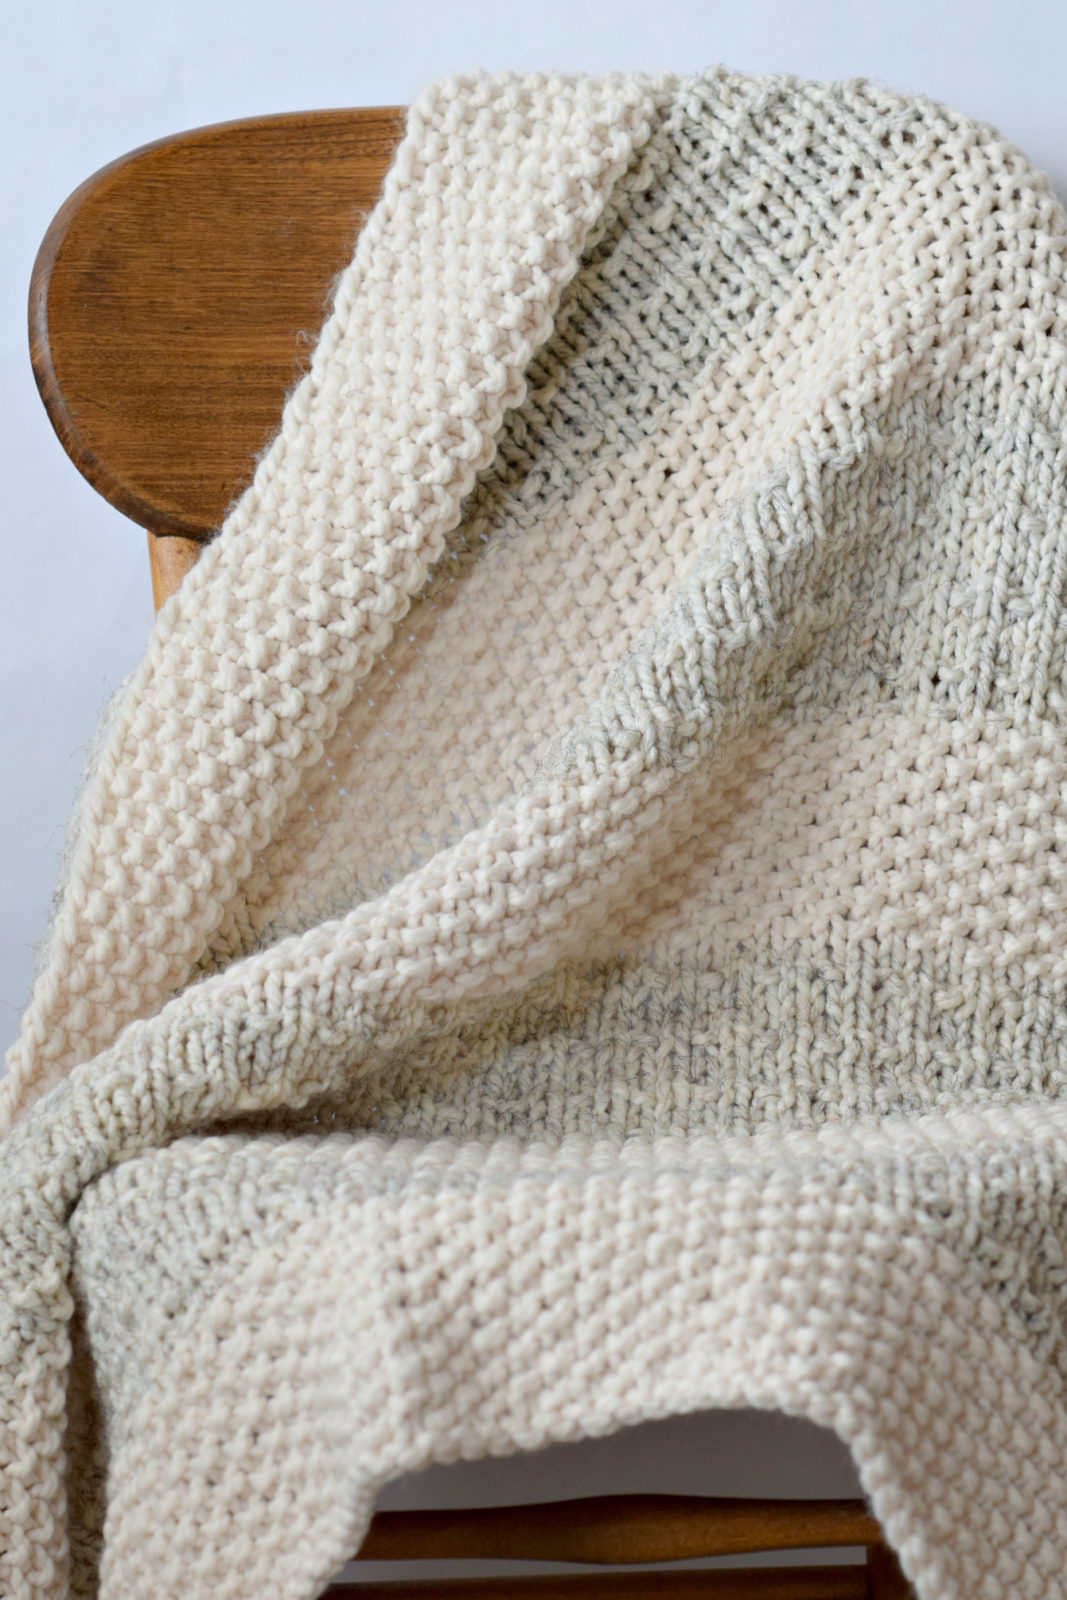 Knitting Blankets : Easy heirloom knit blanket pattern mama in a stitch